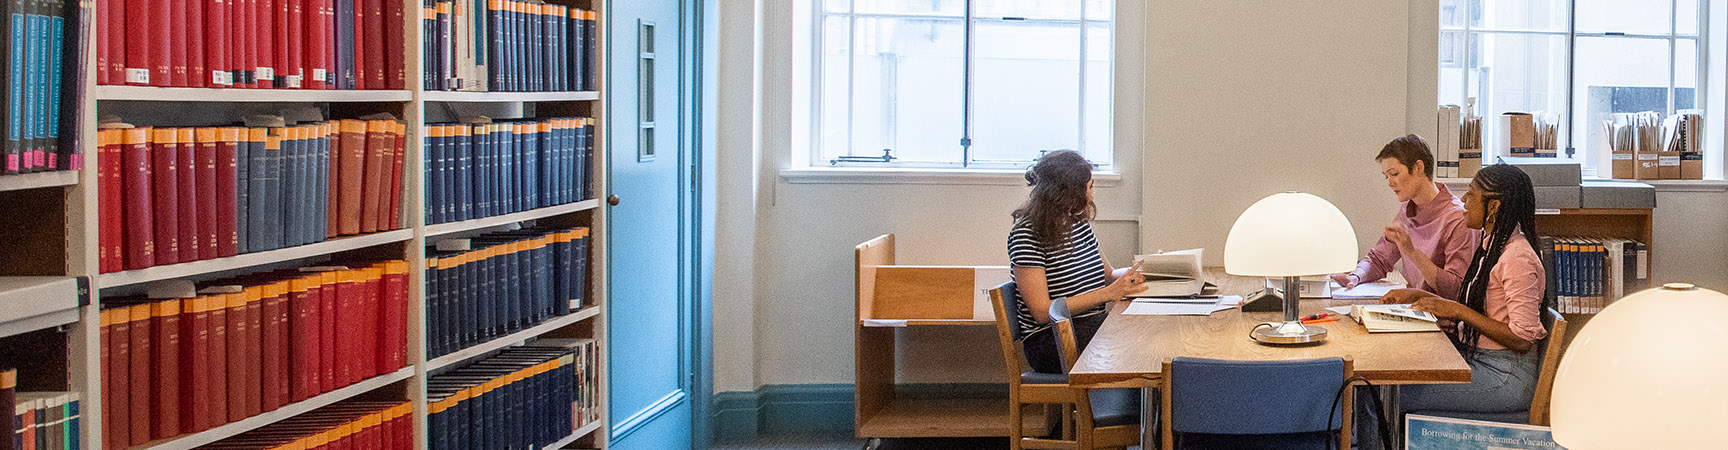 Three students sit around a wooden desk. They are in conversation. There is a bookshelf on one side of the room and large windows on another